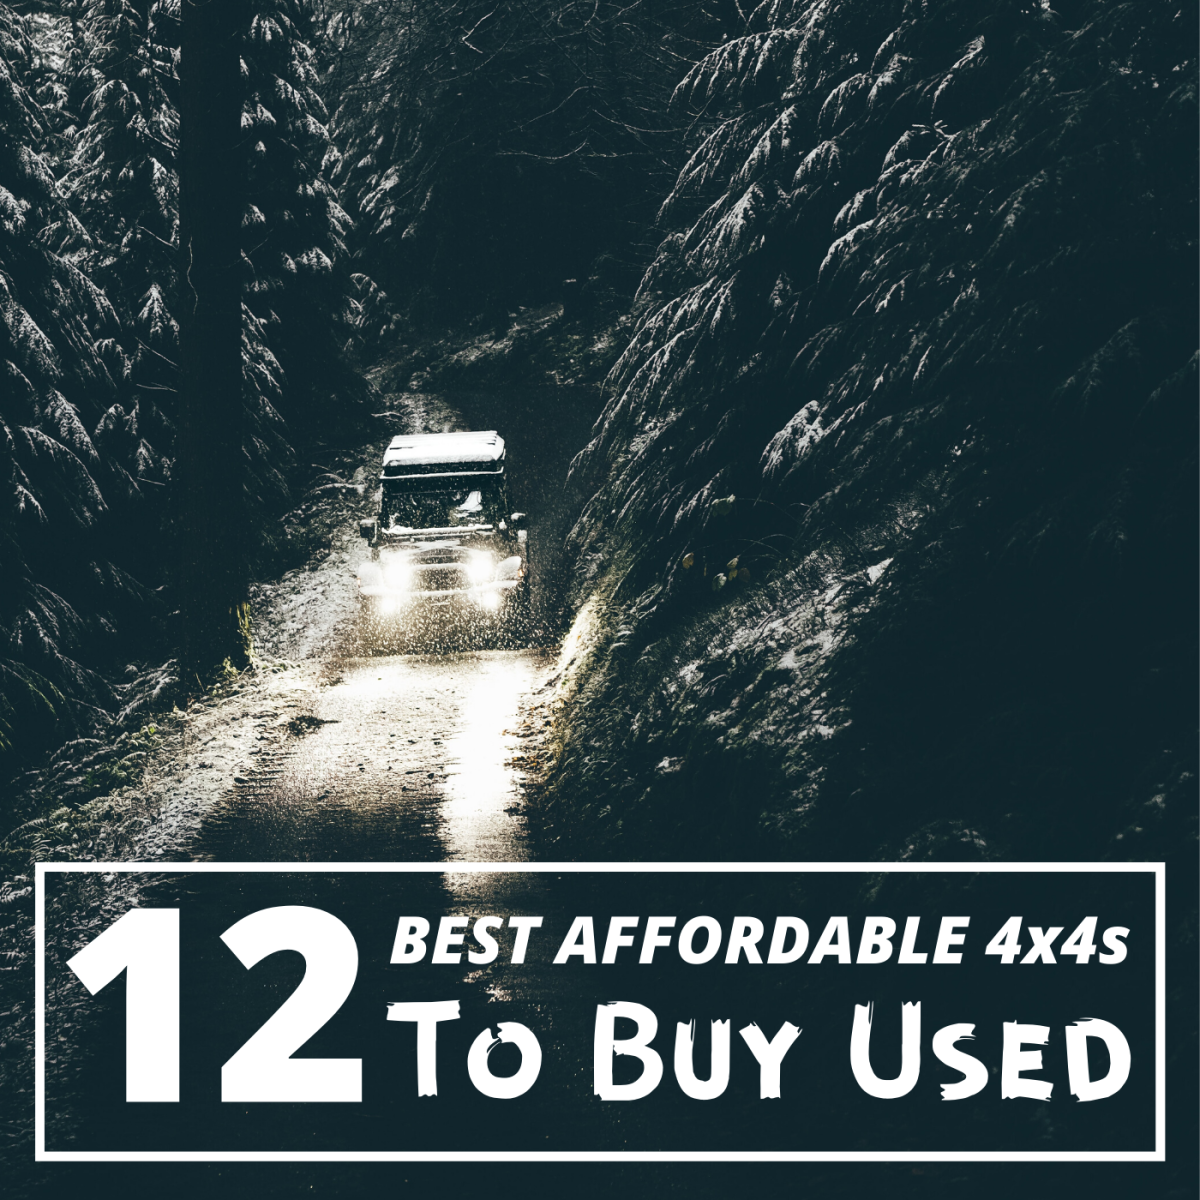 The Best Affordable Used 4x4s: 12 Models Compared